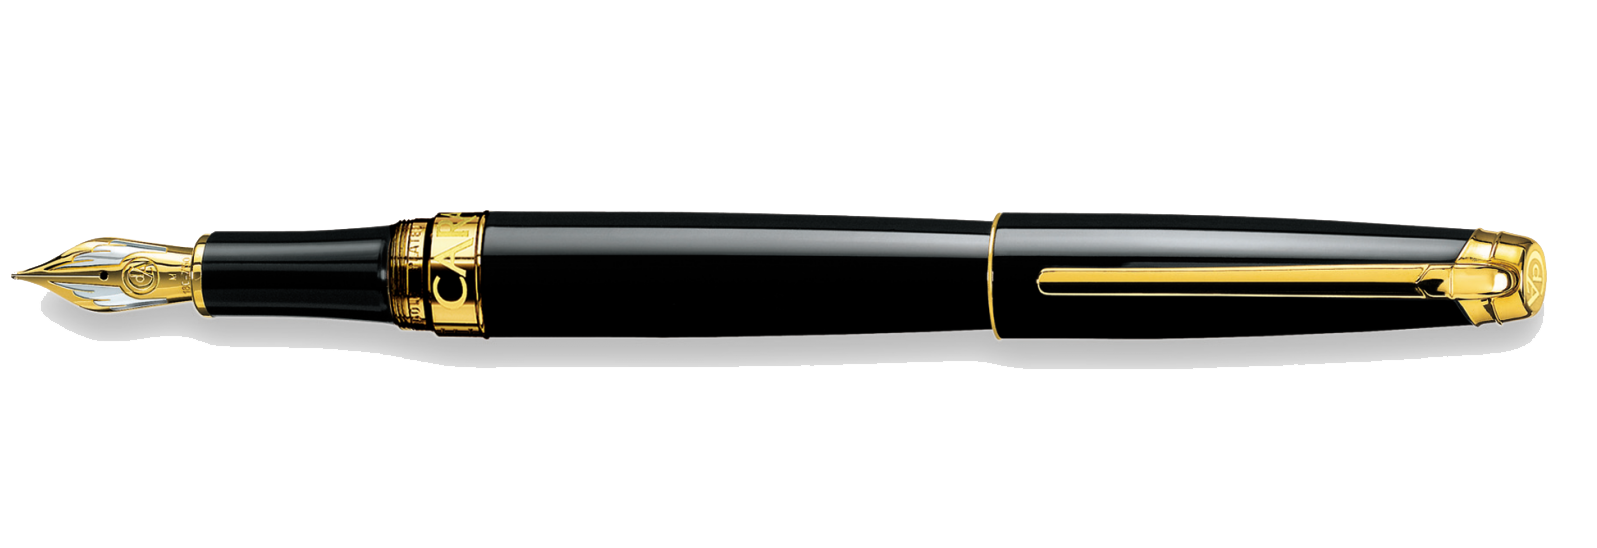 calligraphy pen png